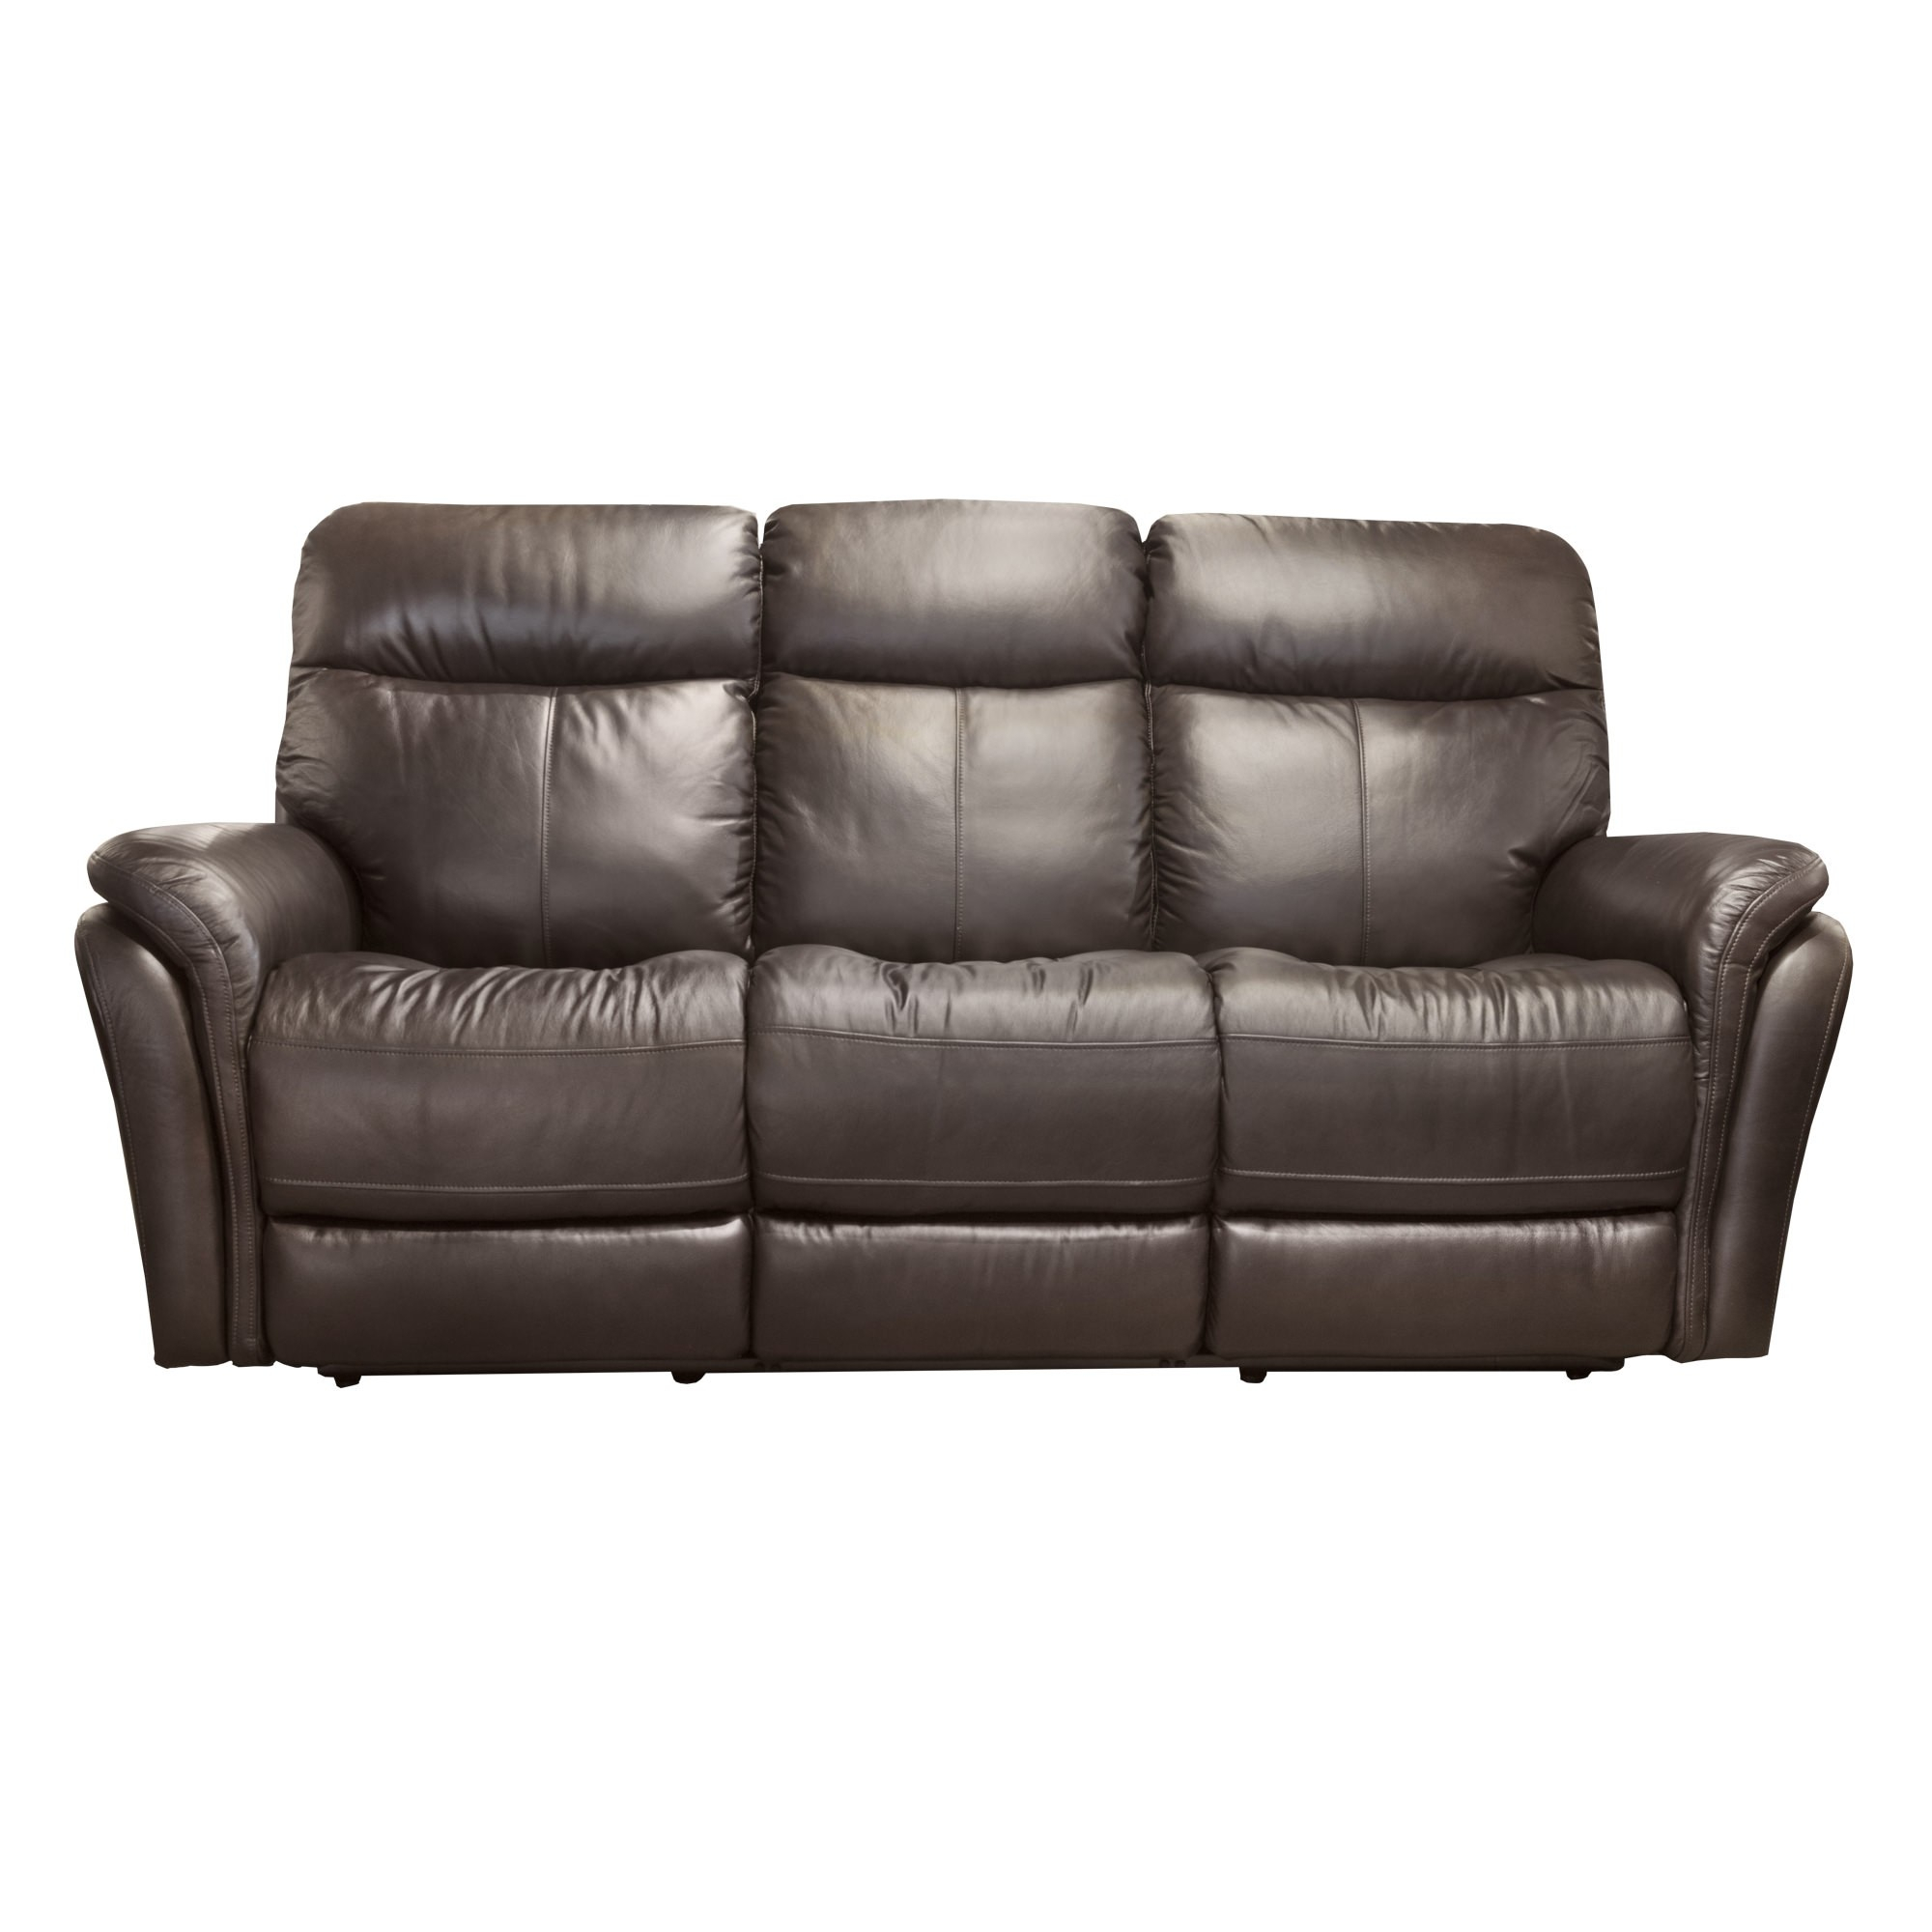 Zoey Brown Power Reclining Sofa With Power Headrest Regarding Expedition Brown Power Reclining Sofas (View 3 of 15)